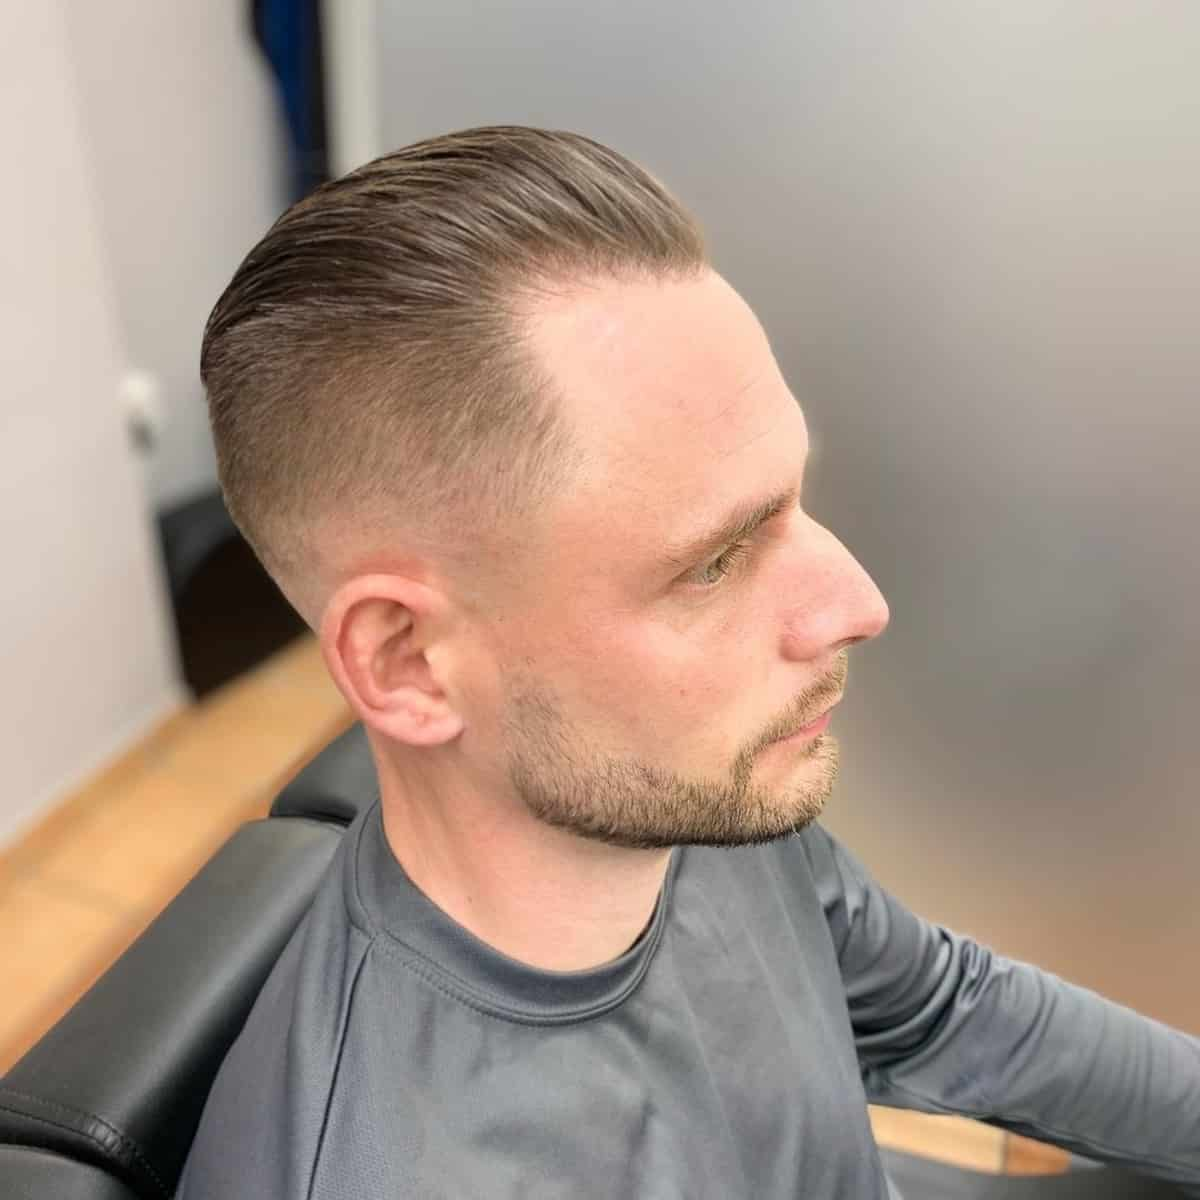 18 Best Haircuts for Men With Thin Hair to Look Thicker